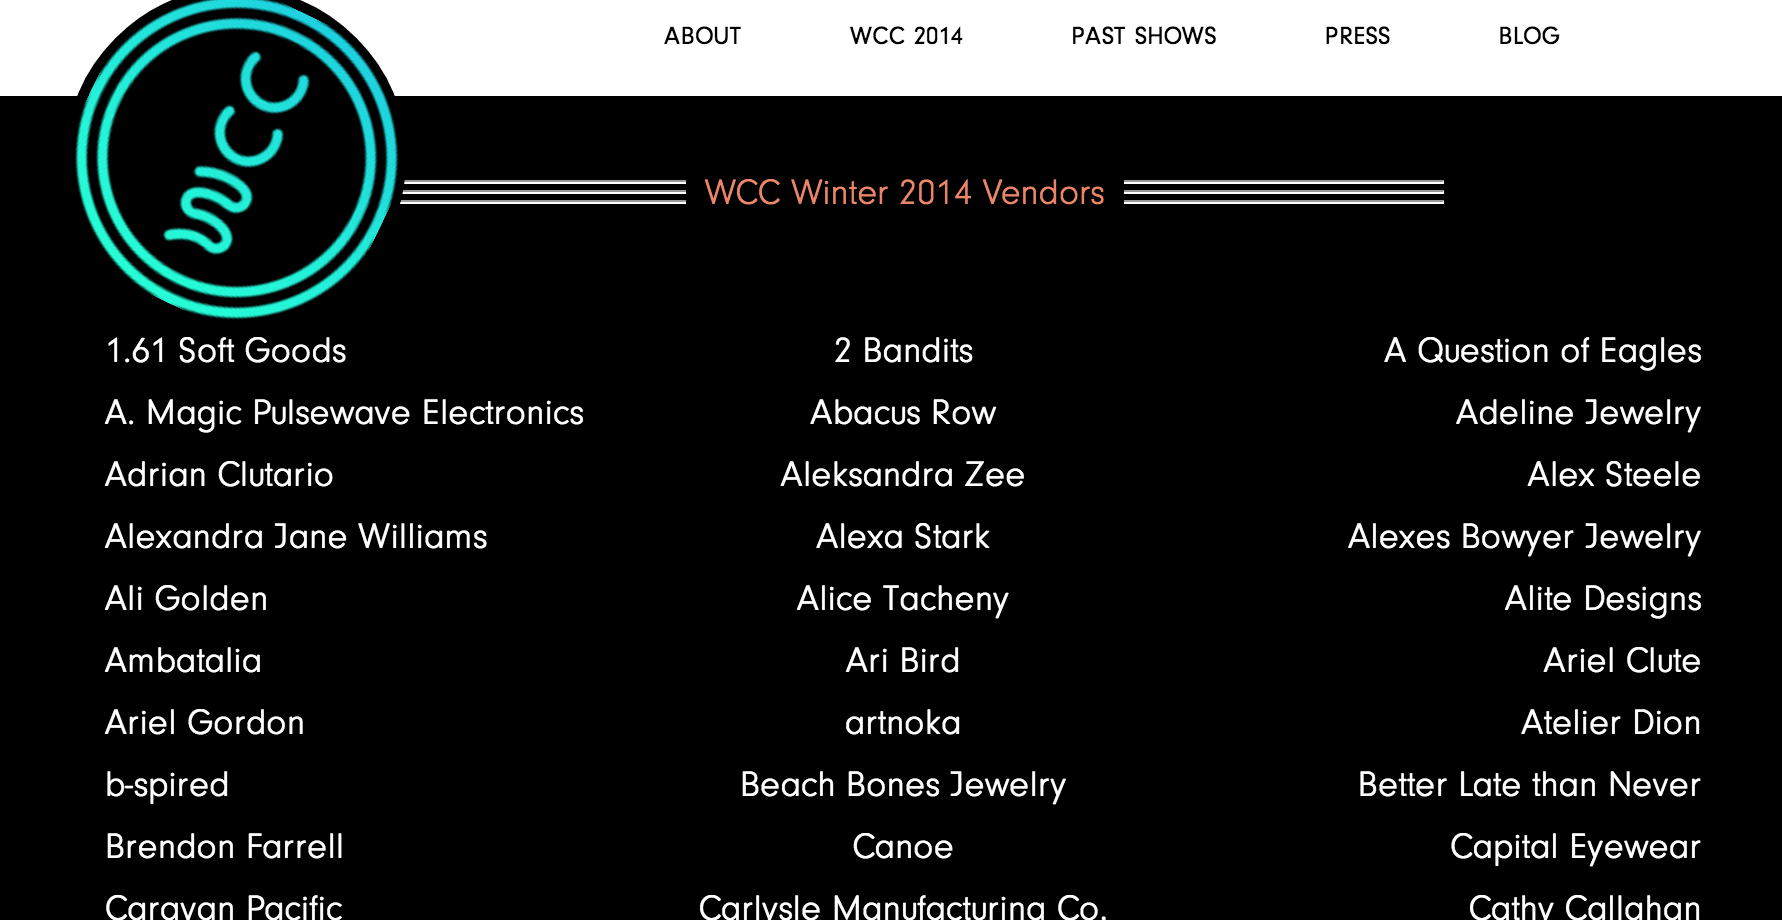 Click image for full list of vendors showing at West Coast Craft.